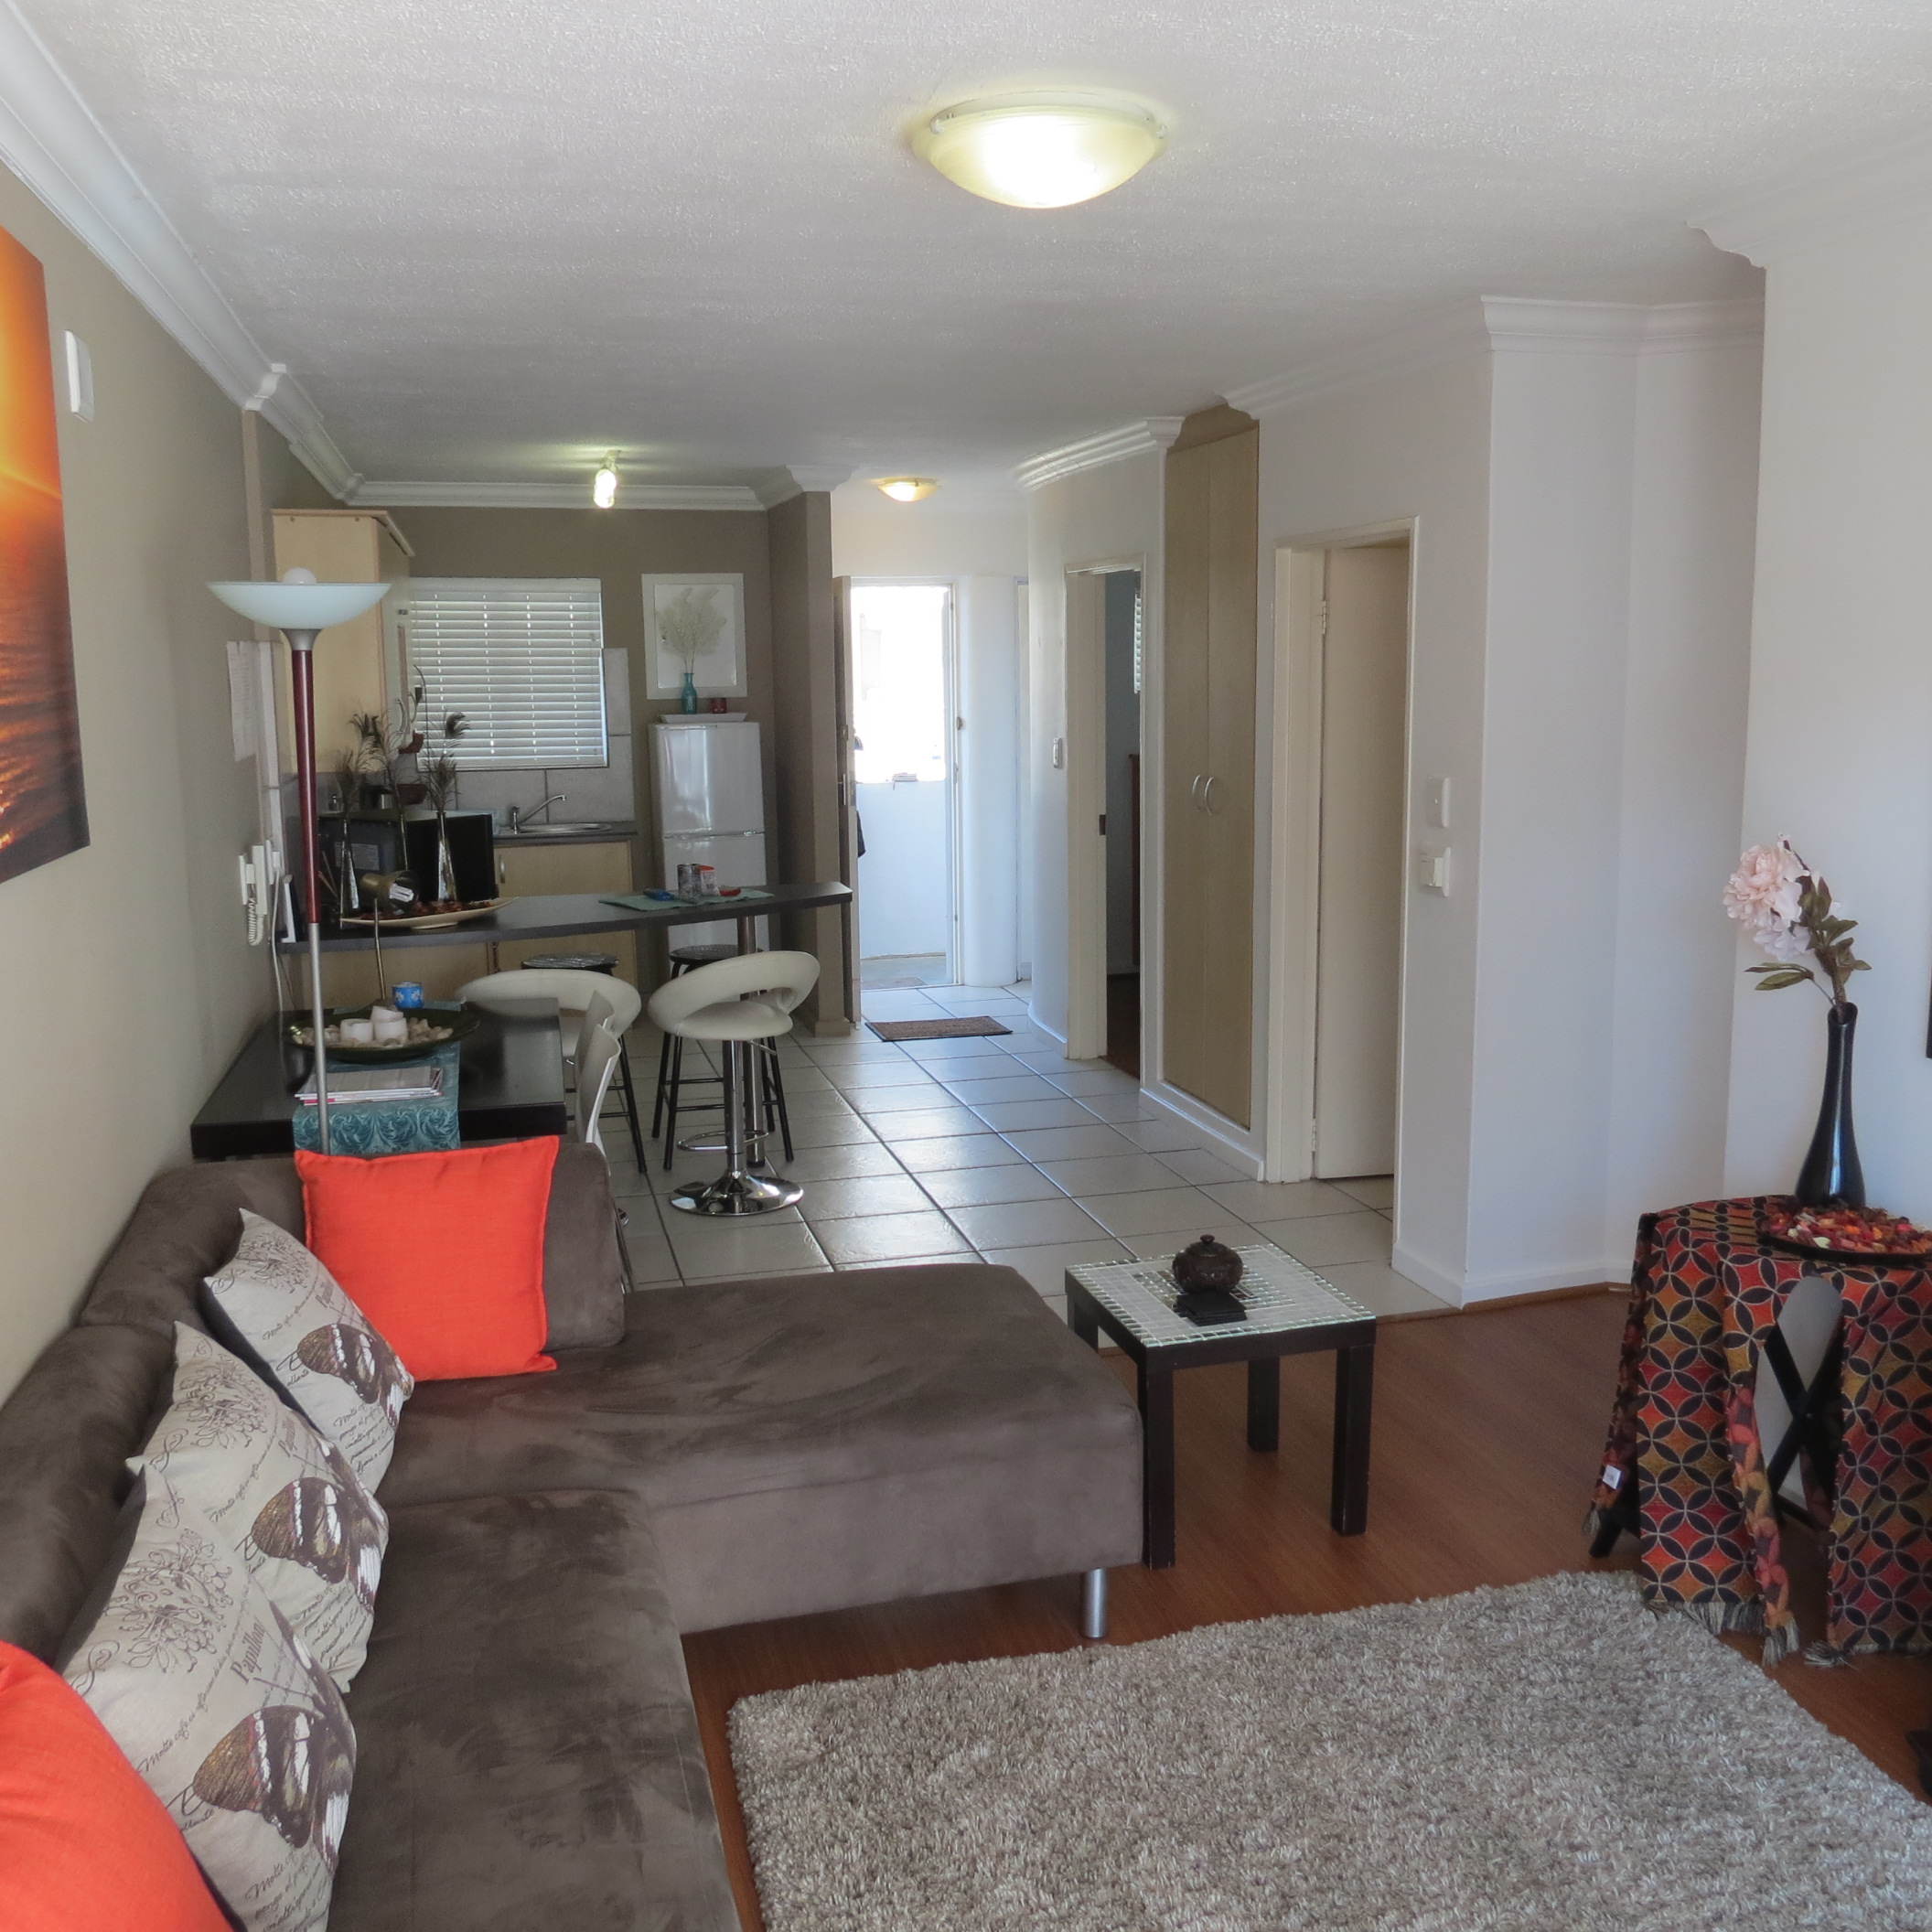 Waterfront Apartments: Tyger Waterfront Apartments Cape Town